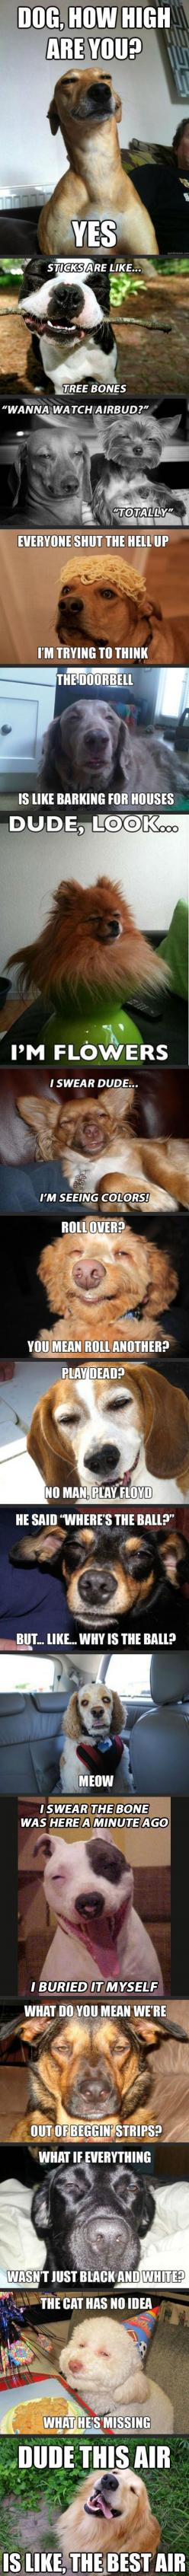 Stoner dogs.: Animals, Funny Dogs, Stoned Dogs, Stoner Dog, High Dogs, Funny Stuff, Funnies, So Funny